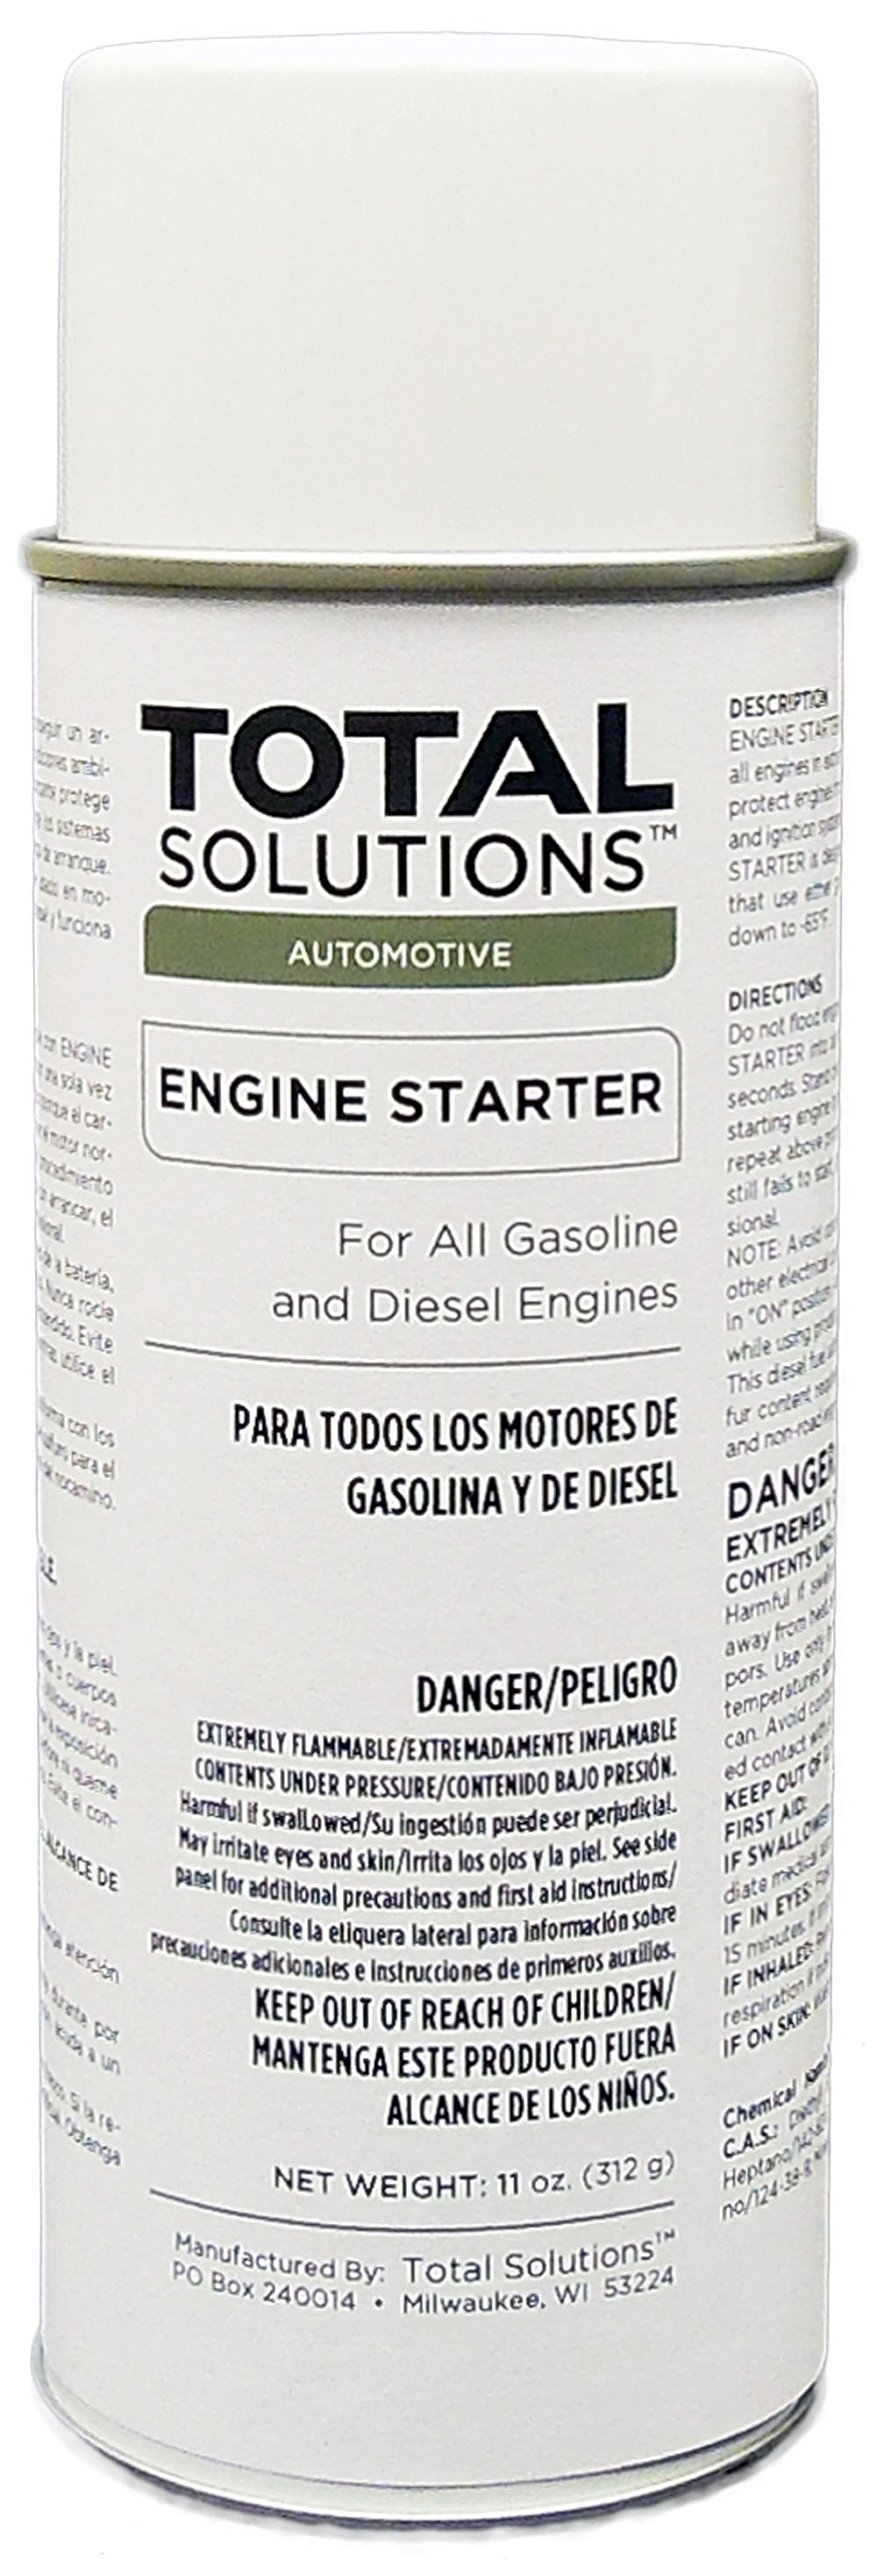 Engine Starter Aerosol - Provides quick starts in cold, damp weather - 12 Can Case by ChemJoe